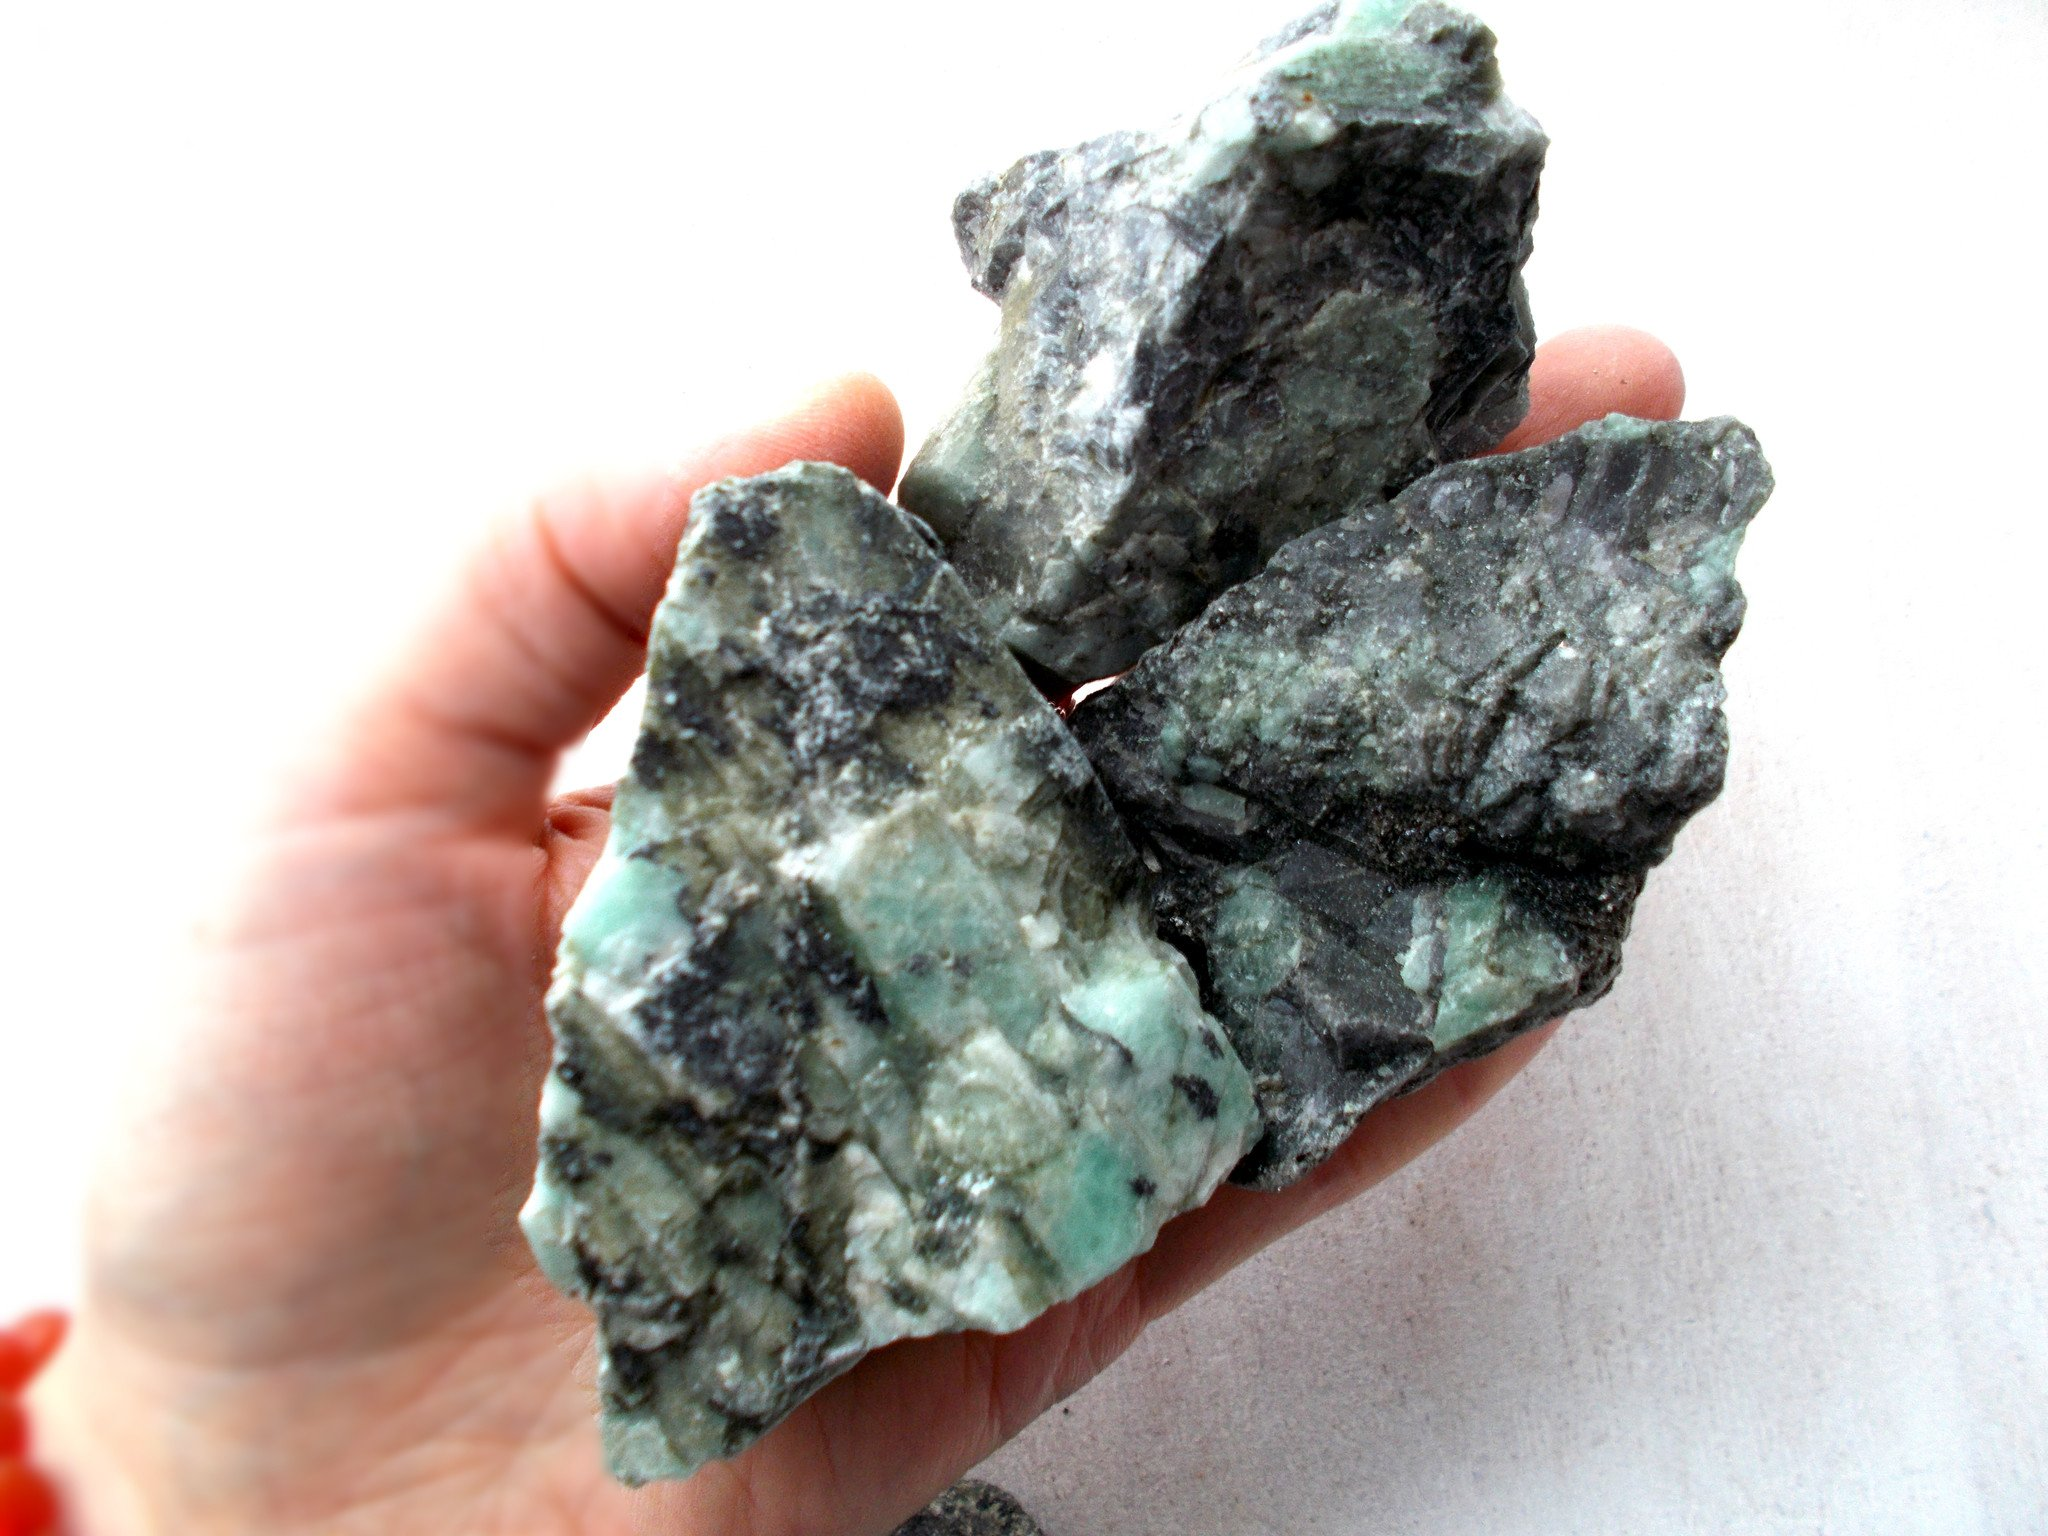 Raw Emerald Stone, Emerald Rough Stones, Raw Crystals and Stones ...